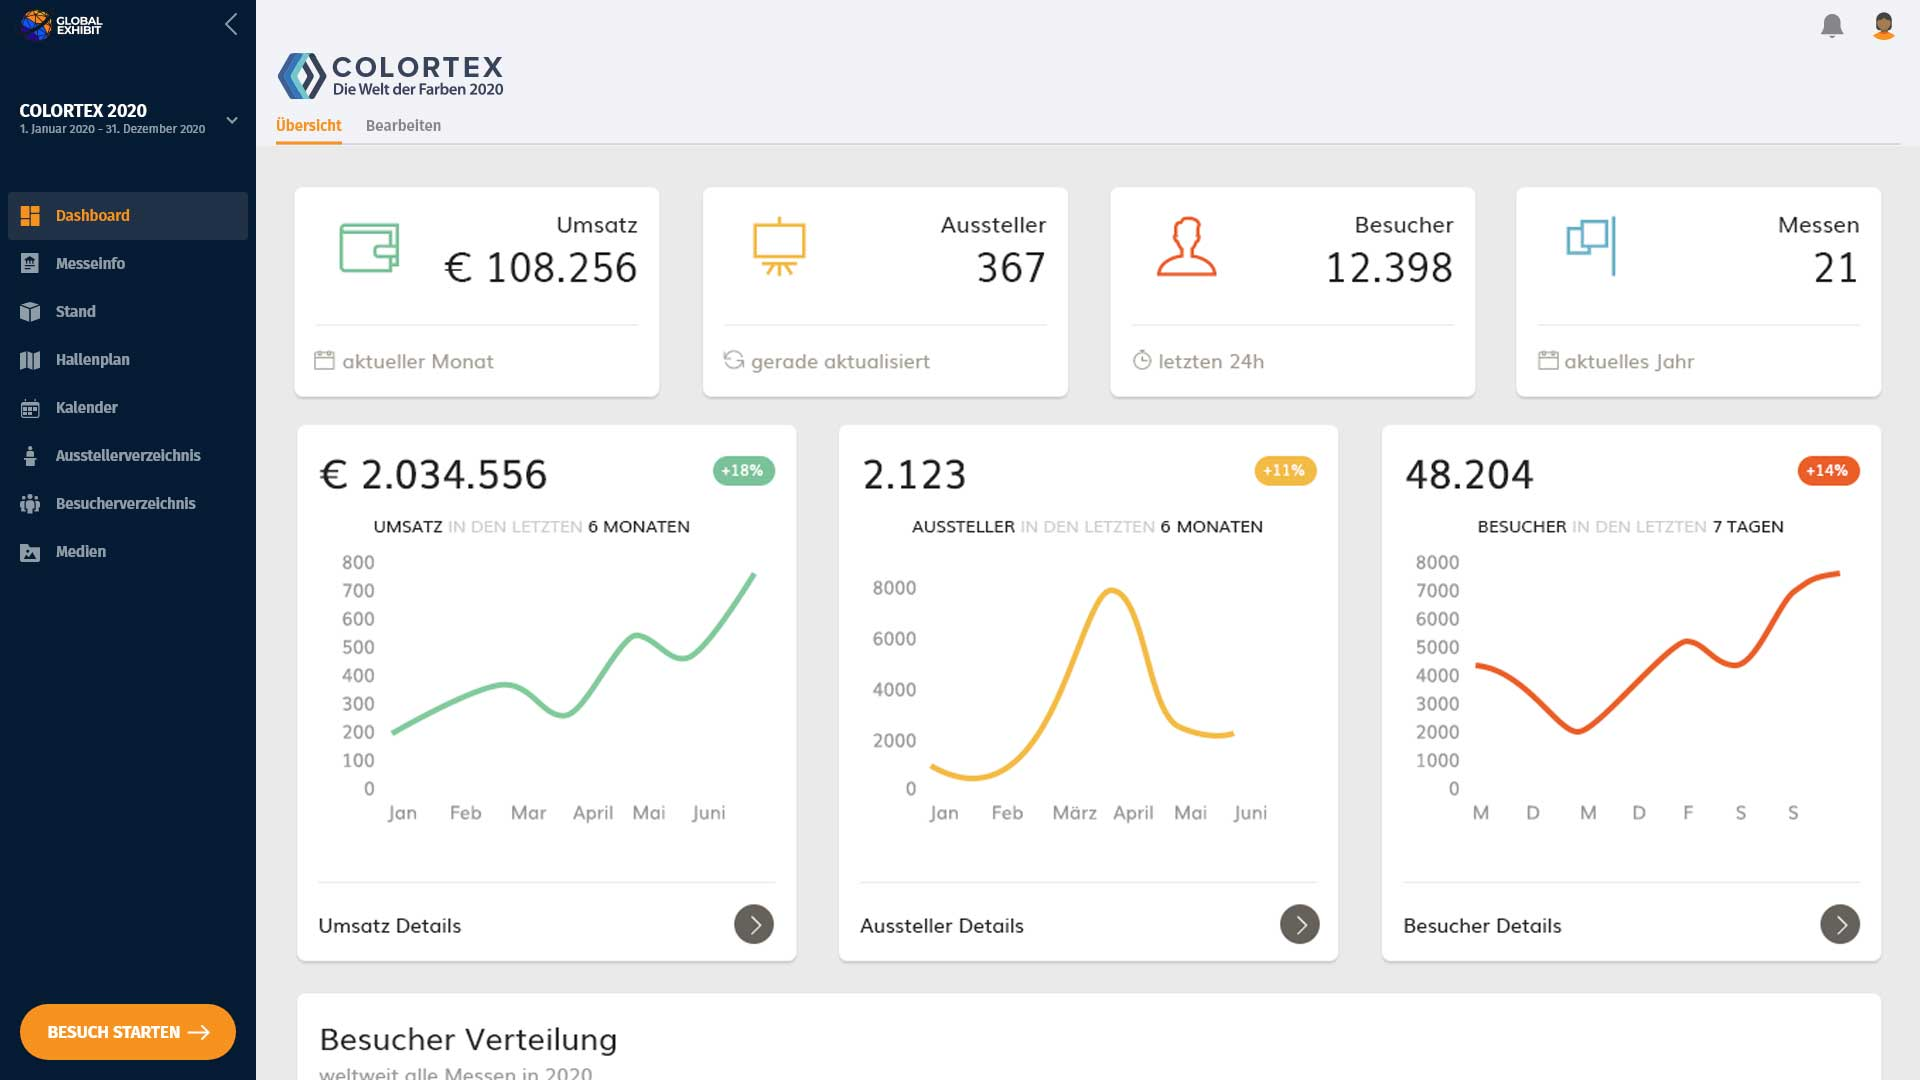 Fairsnext Dashboard für die virtuelle Messe